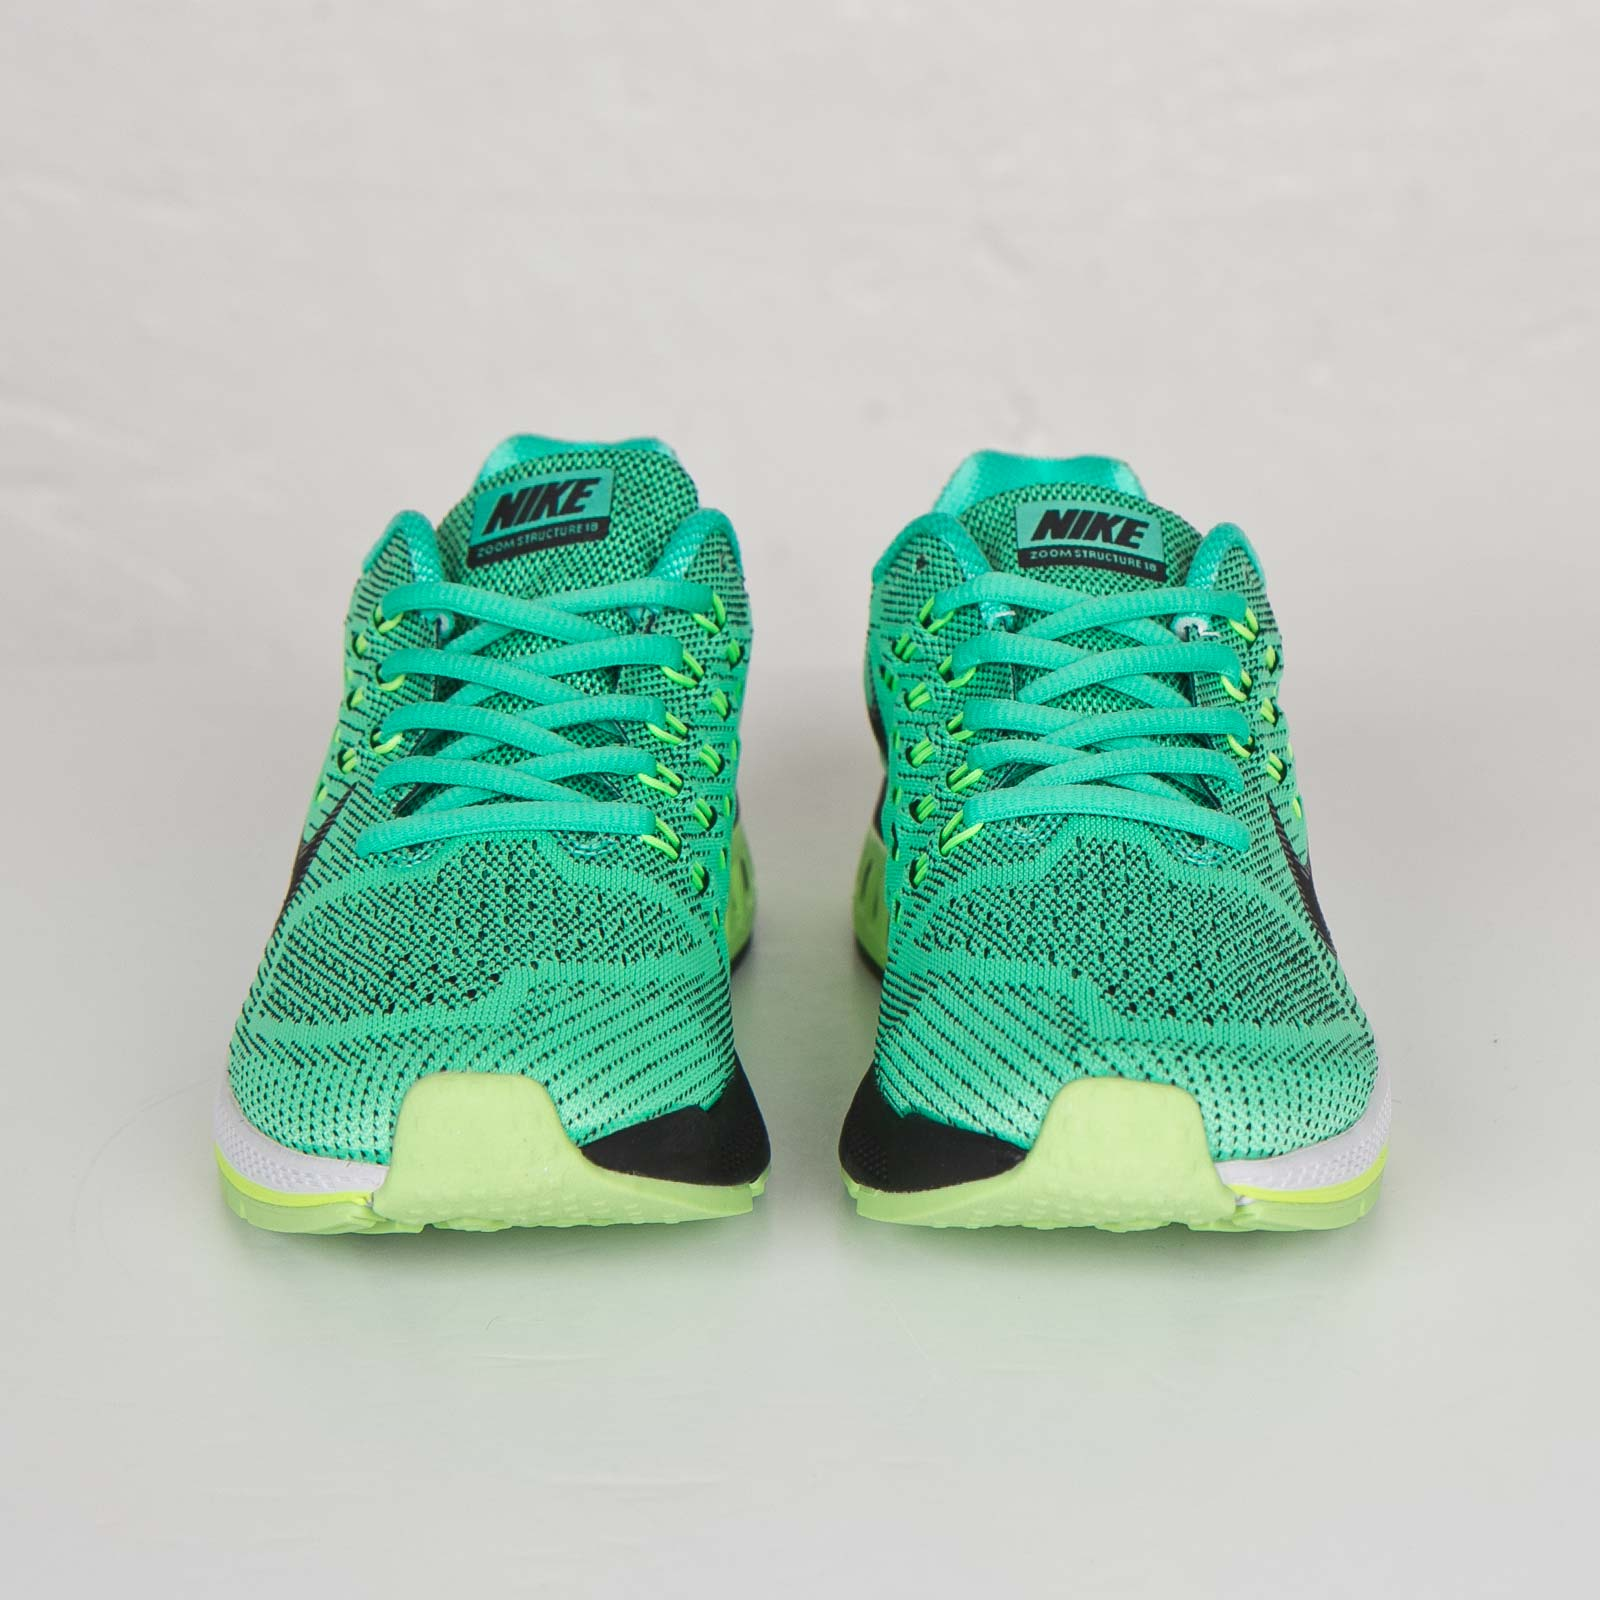 Nike W Air Zoom Structure 18 -, Homme, Turquoise - Turquoise (Menta/Black/Voltage Green/Ghost Green), 36